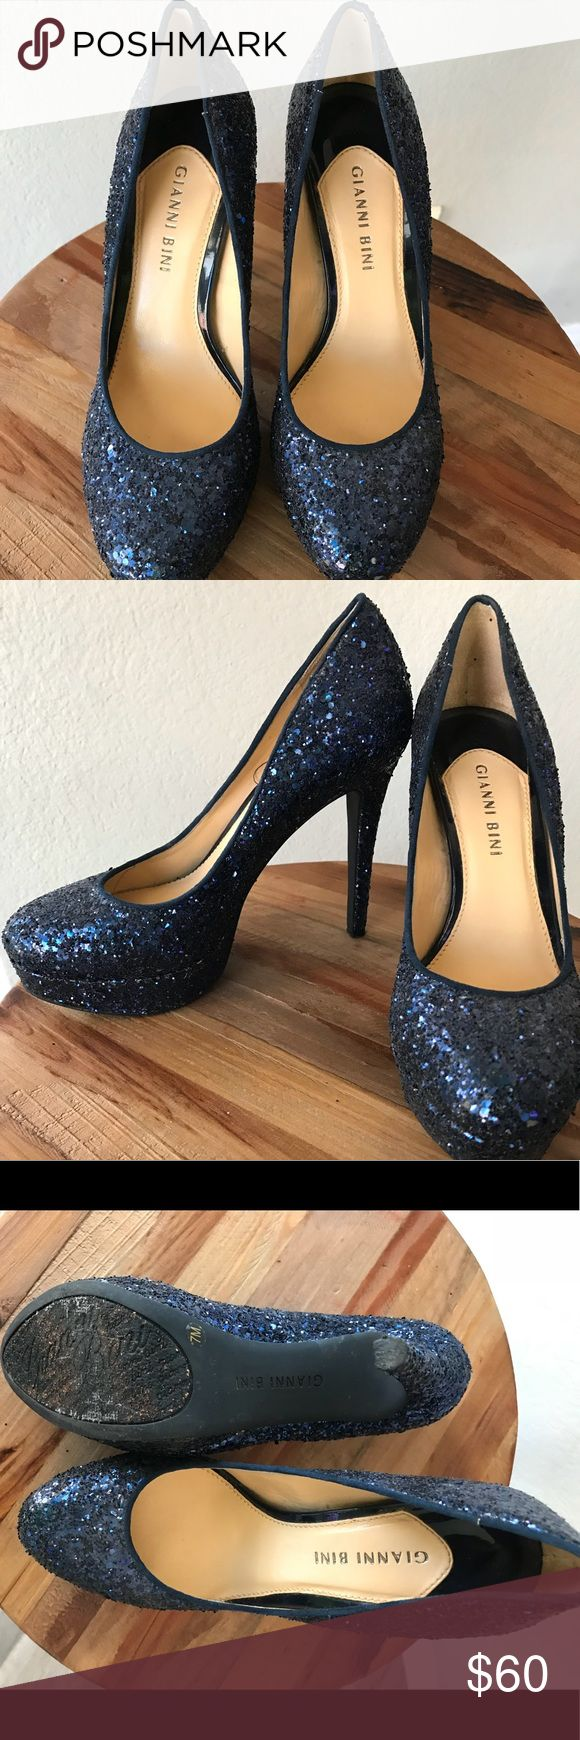 Gianni Bini Very cute sparkly Gianni Bini heels. Worn once for a birthday party outing. Walked on a little bit of gravel. Size 7. Please feel free to ask any questions. Thank you. Gianni Bini Shoes Heels